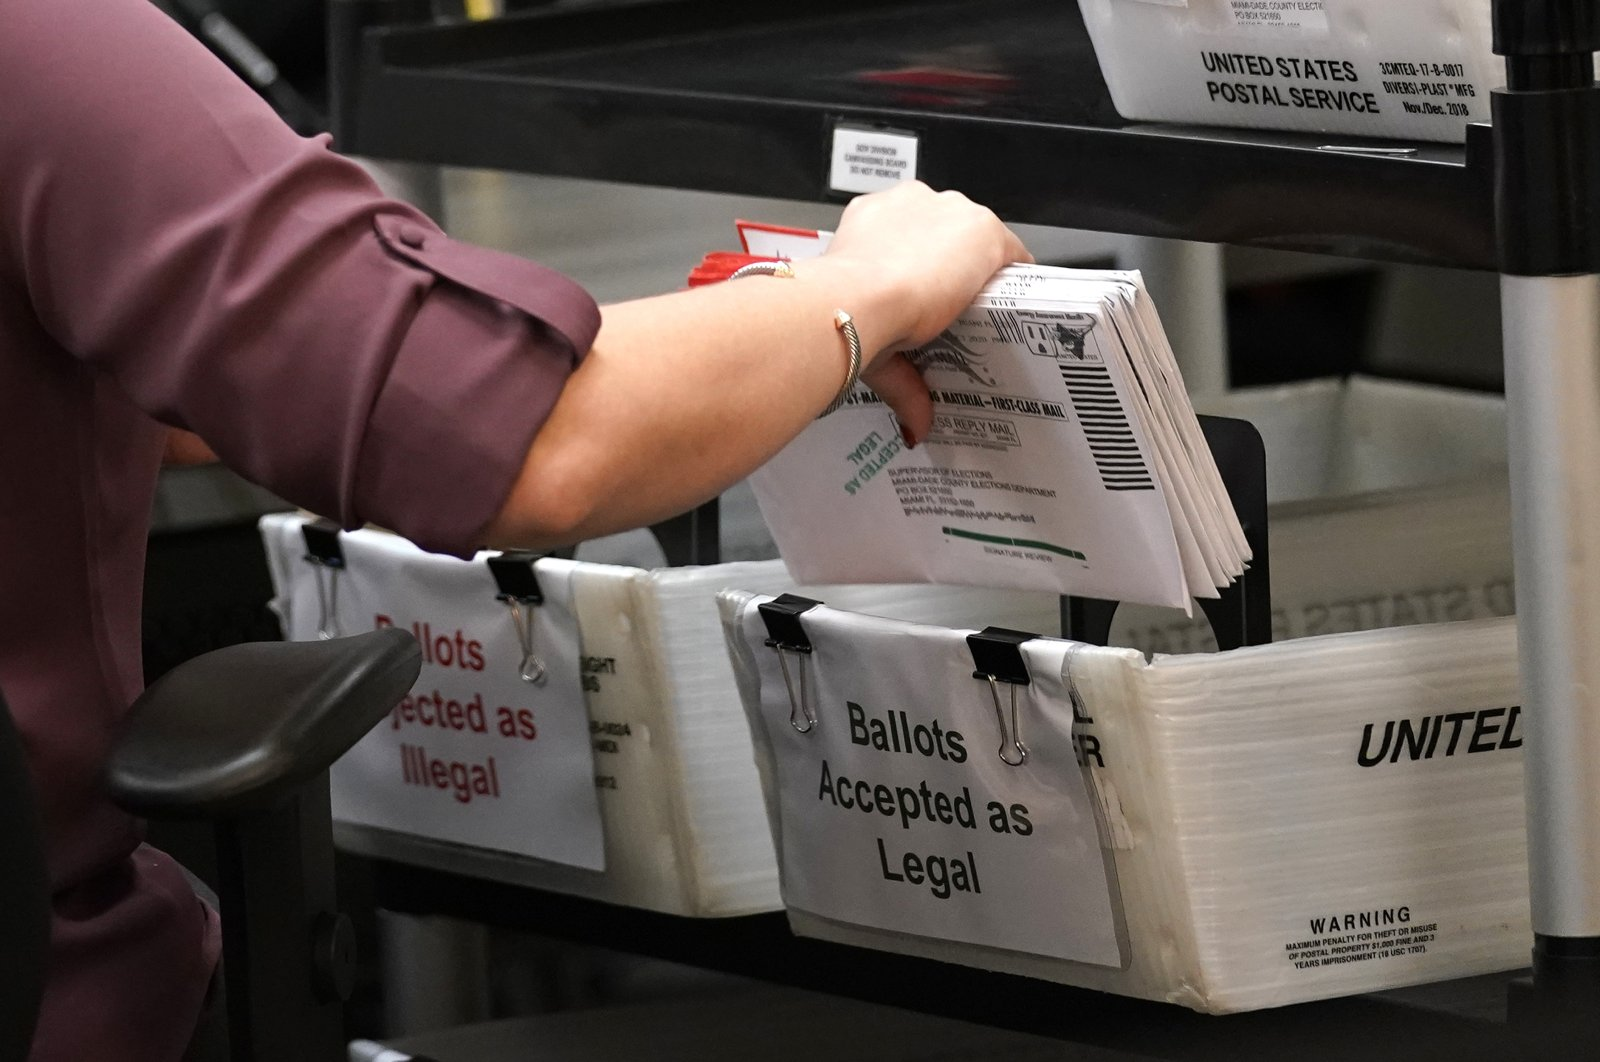 Election worker sorts mail-in ballots at the Miami-Dade County Board of Elections, in Doral, Florida. Oct. 26, 2020 (AP Photo)